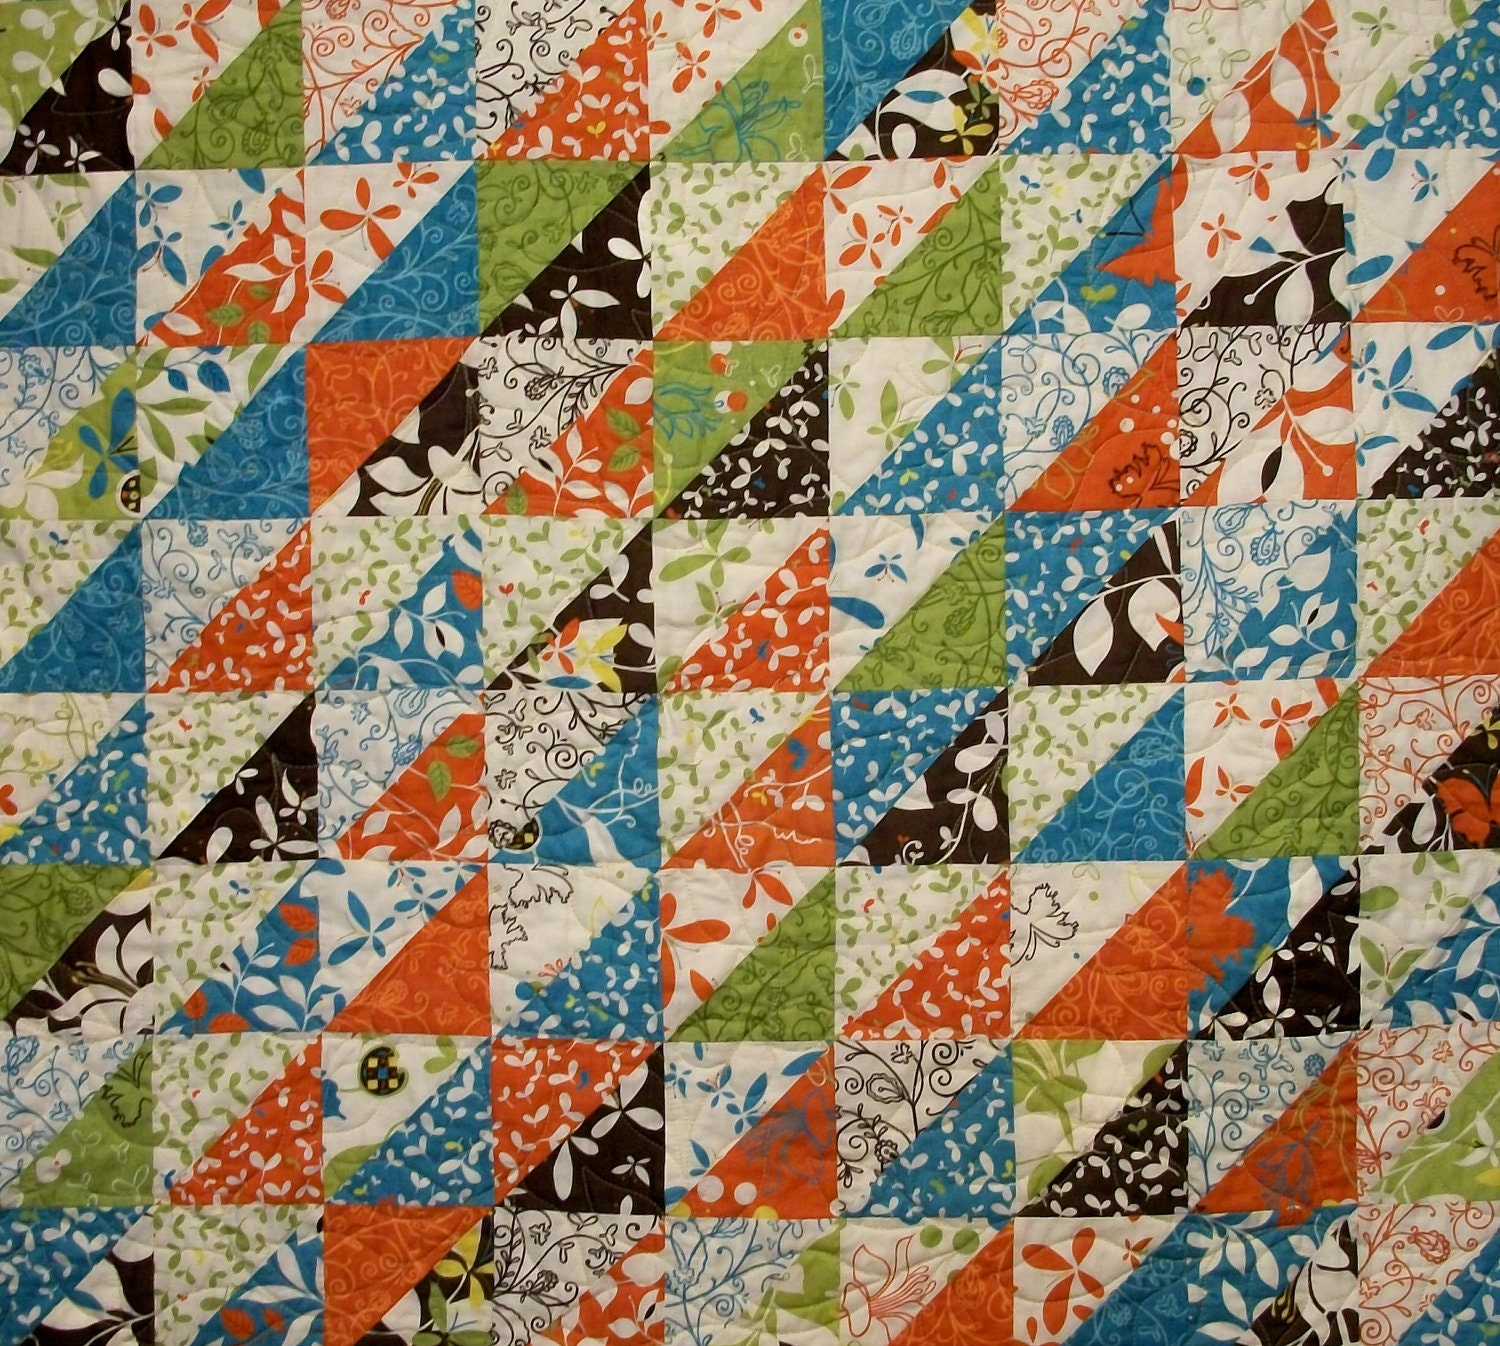 Butterfly Throw Quilt Triangles Chrysalis Tangerine Turquoise Lime Chocolate Brown Handmade Ready to Ship One of a Kind - atthebrightspot